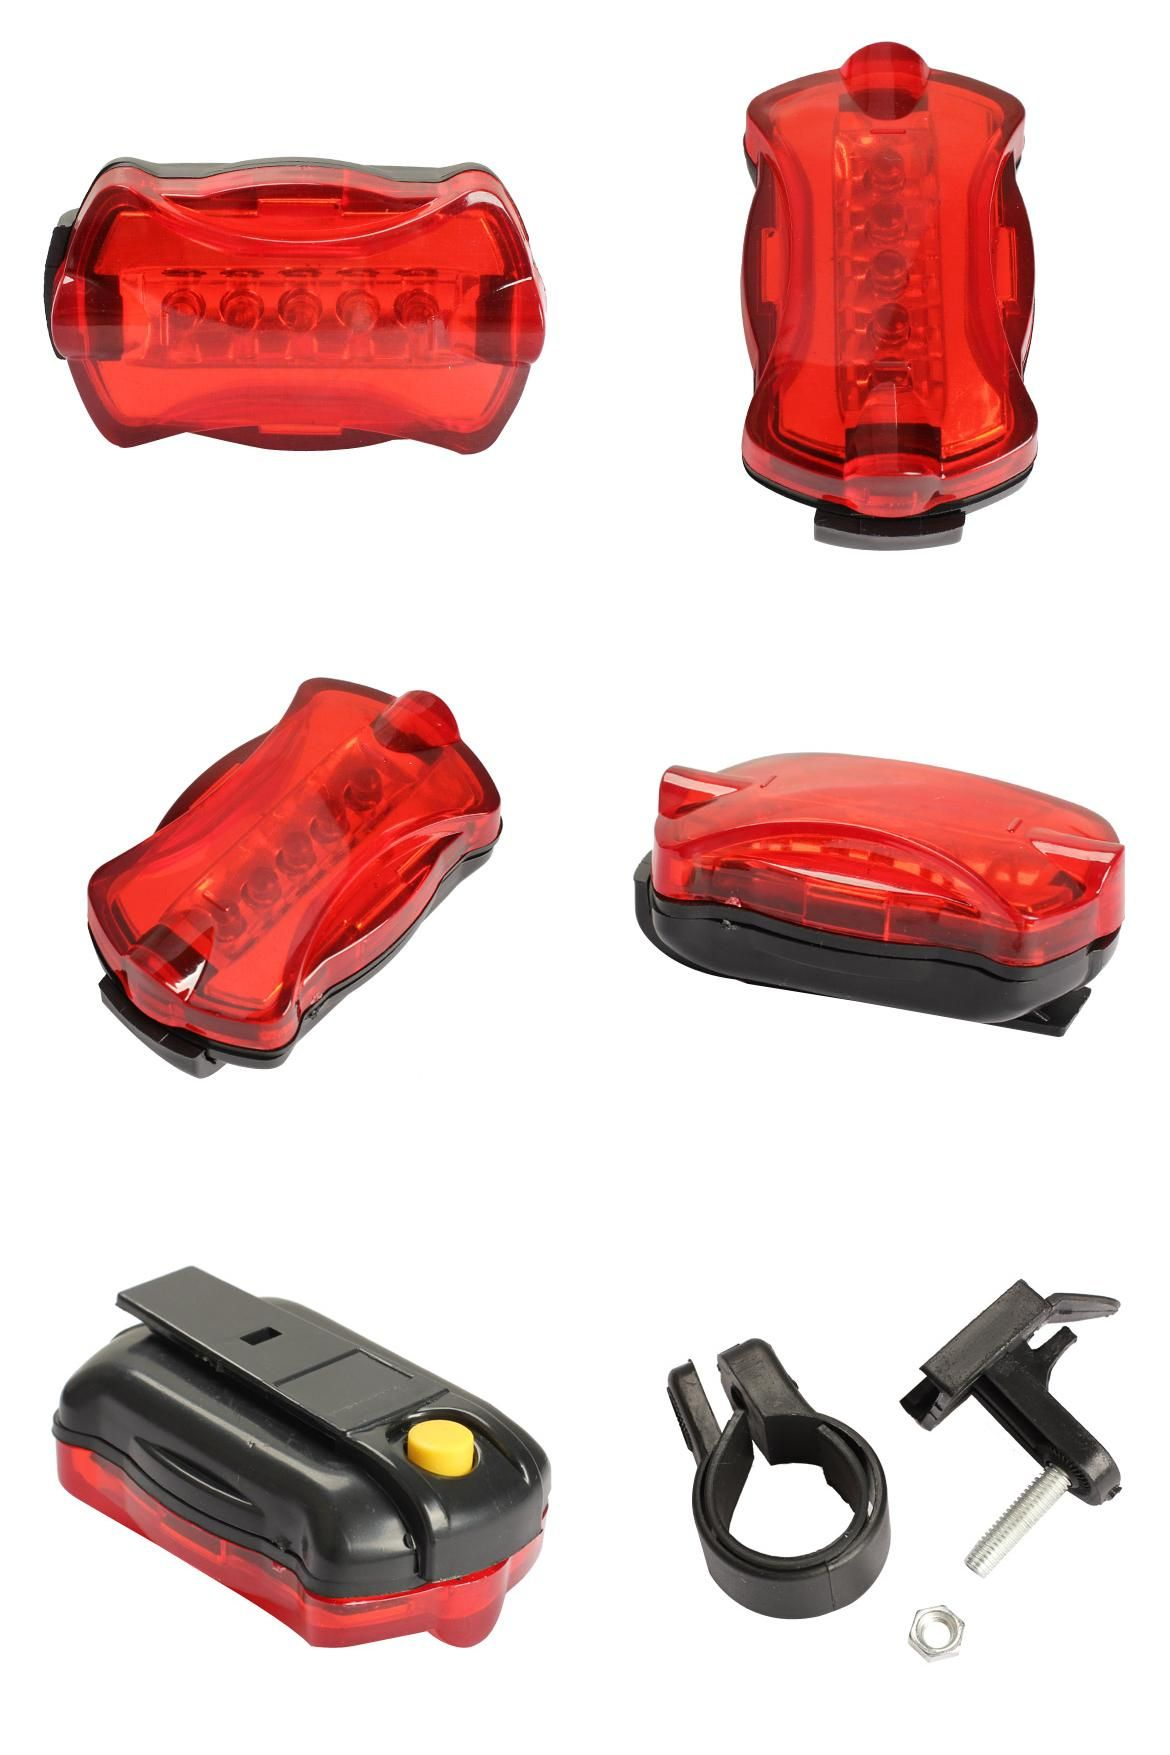 Waterproof Bright 5 LED Bike Bicycle Cycle Front and Rear Back Tail Lights  C3